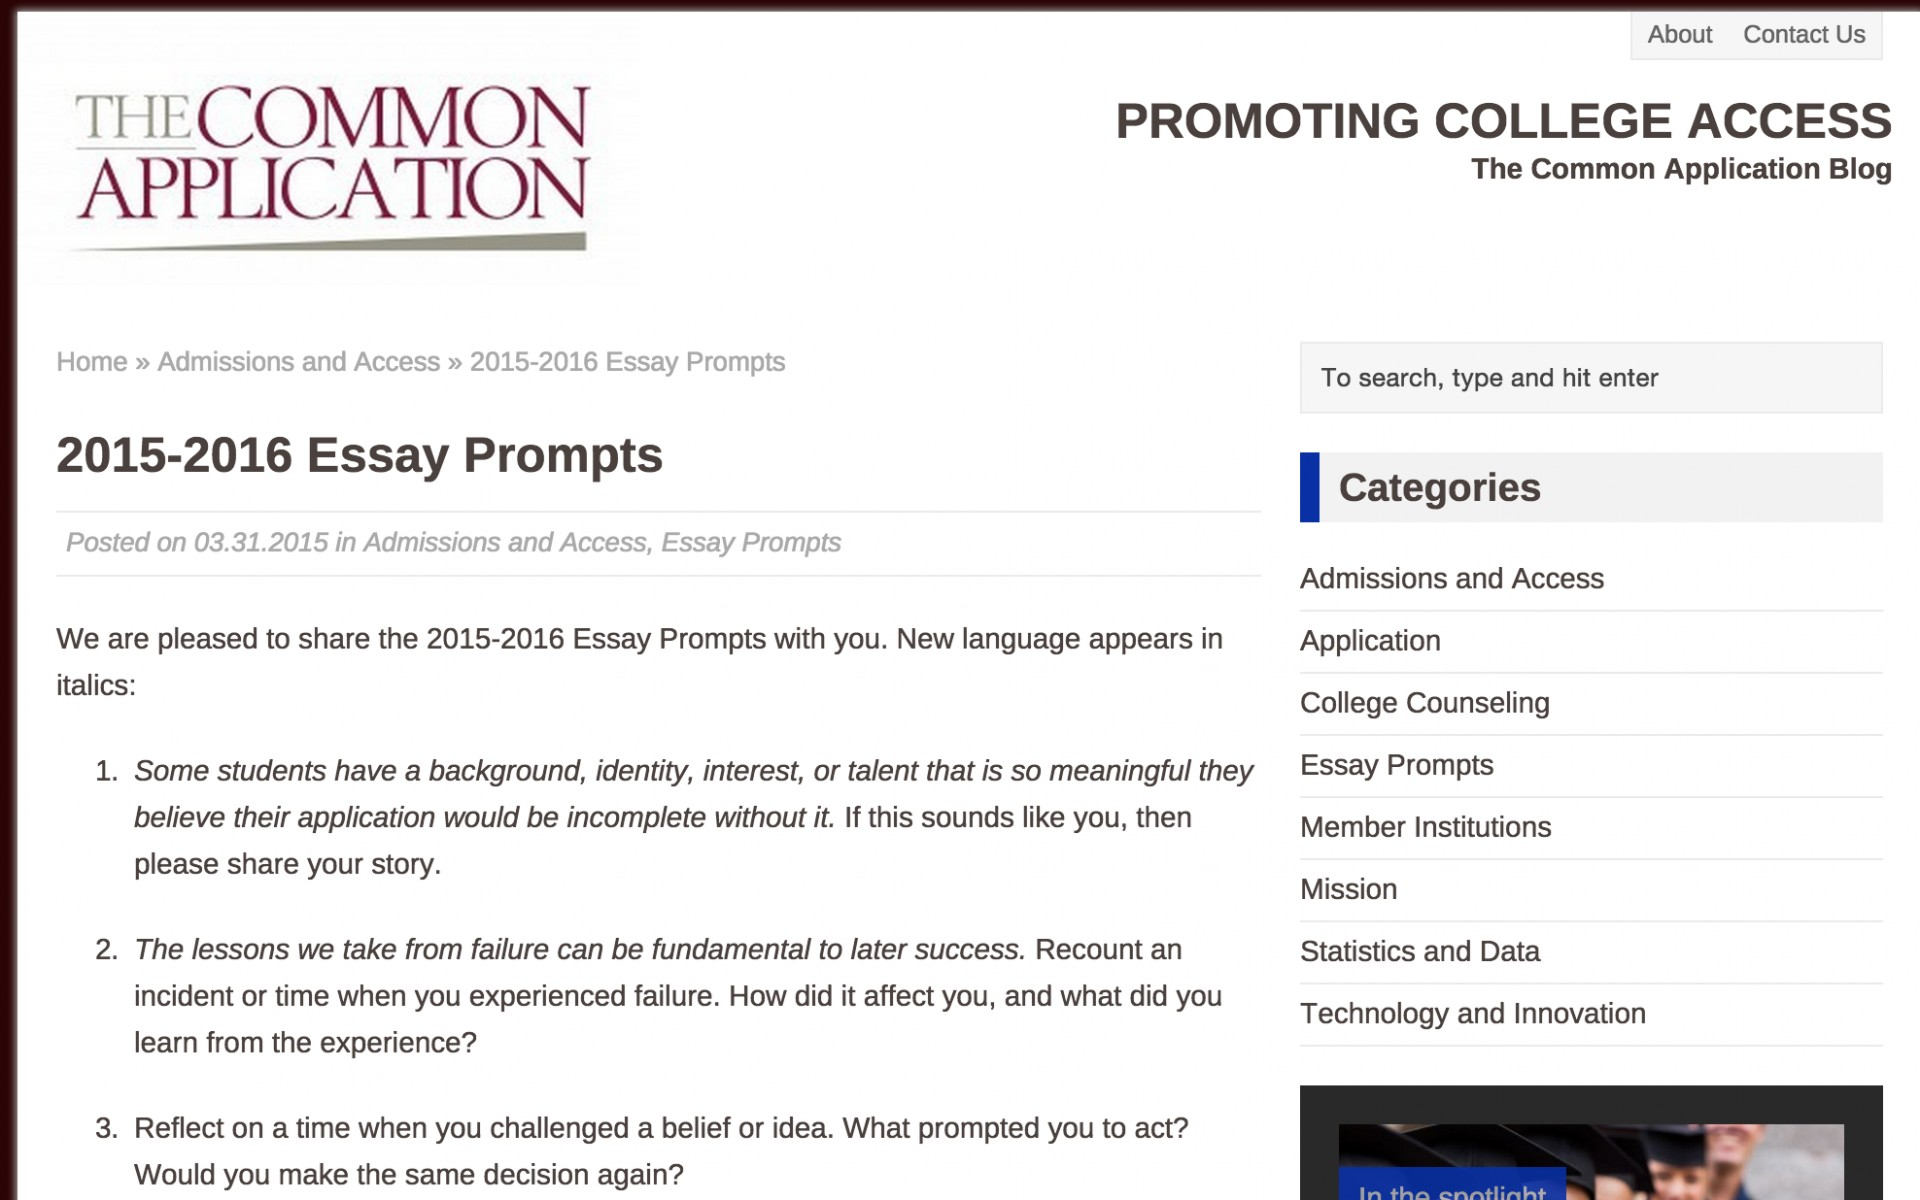 017 Essay Prompts For College Screen Shot At Pm Unique Writing Esl Students Argumentative Expository 1920